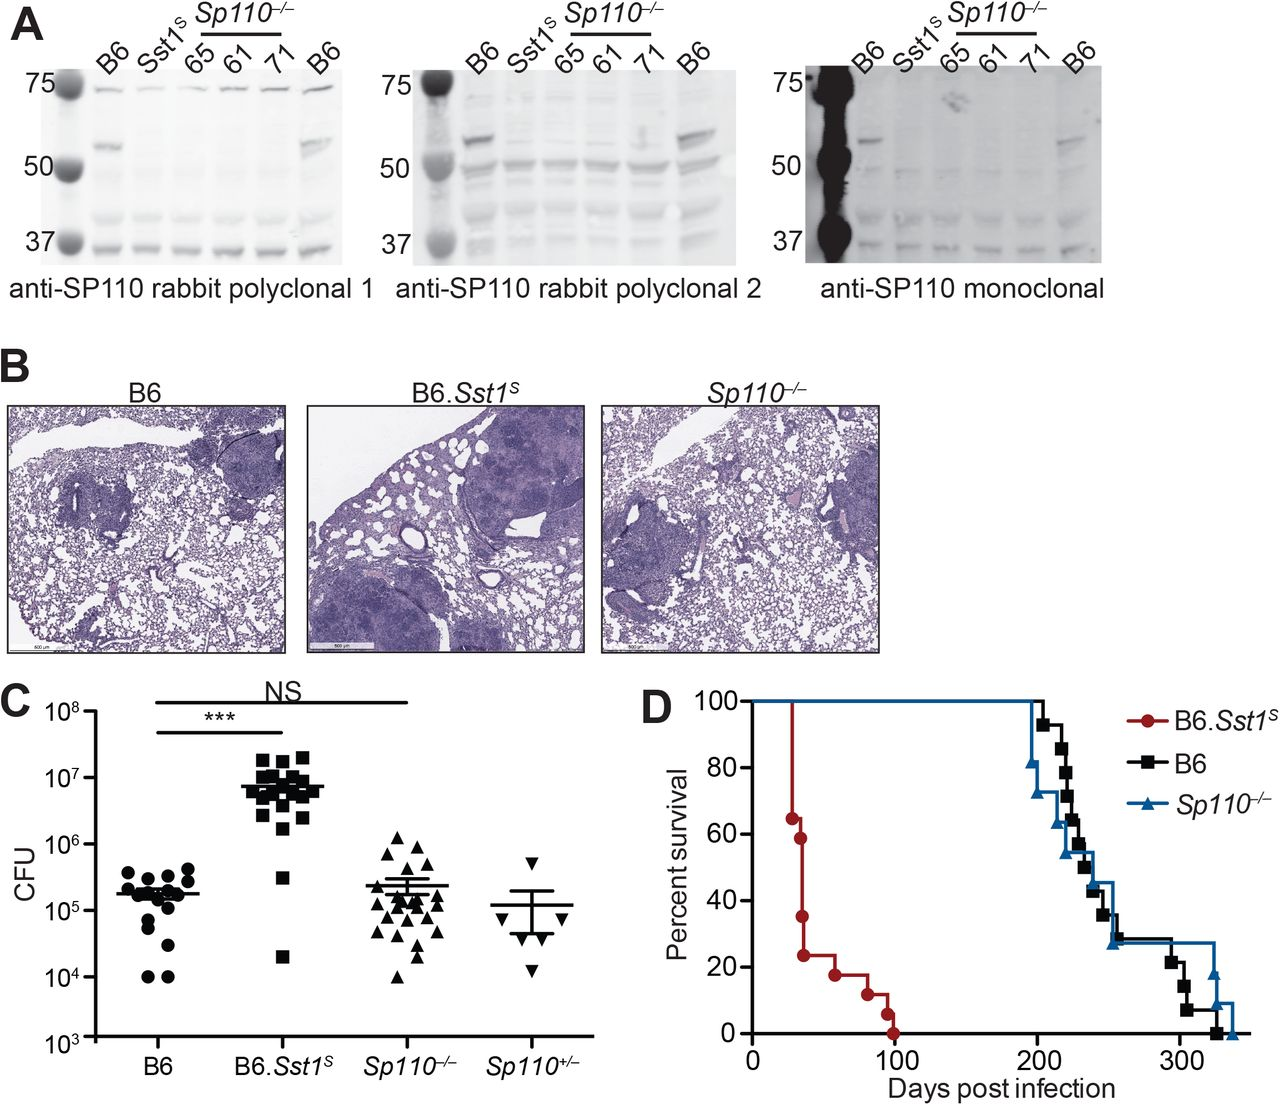 Sp110 −/− mice are not susceptible to M. tuberculosis infections. ( A ), BMMs were treated with 10U/ml of IFNγ for 24 hours and cells were lysed with RIPA buffer. 5μg of total protein was loaded on each lane, and immunoblot was performed with respective antibodies as shown. Molecular weight standards are shown on the left of each blot in kDa. Individual membranes were imaged separately. Three independent lines of Sp100 −/− mice were analyzed (denoted lines 61, 65, and 71). ( B-D ), Lung of mice infected with M. tuberculosis were stained with hematoxylin and eosin (H E) for histology ( B ), measured for CFU at 25 days post-infection (Mann-Whitney test) ( C ) or, monitored for survival ( D ). All except B6 mice were bred in-house, and combined results from the three independent Sp110 −/− lines are shown. Representative of 2 experiments ( B , D ); combined results of 3 infections ( C ). *, p ≤ 0.05; **, p ≤ 0.01; ***, p ≤ 0.005.